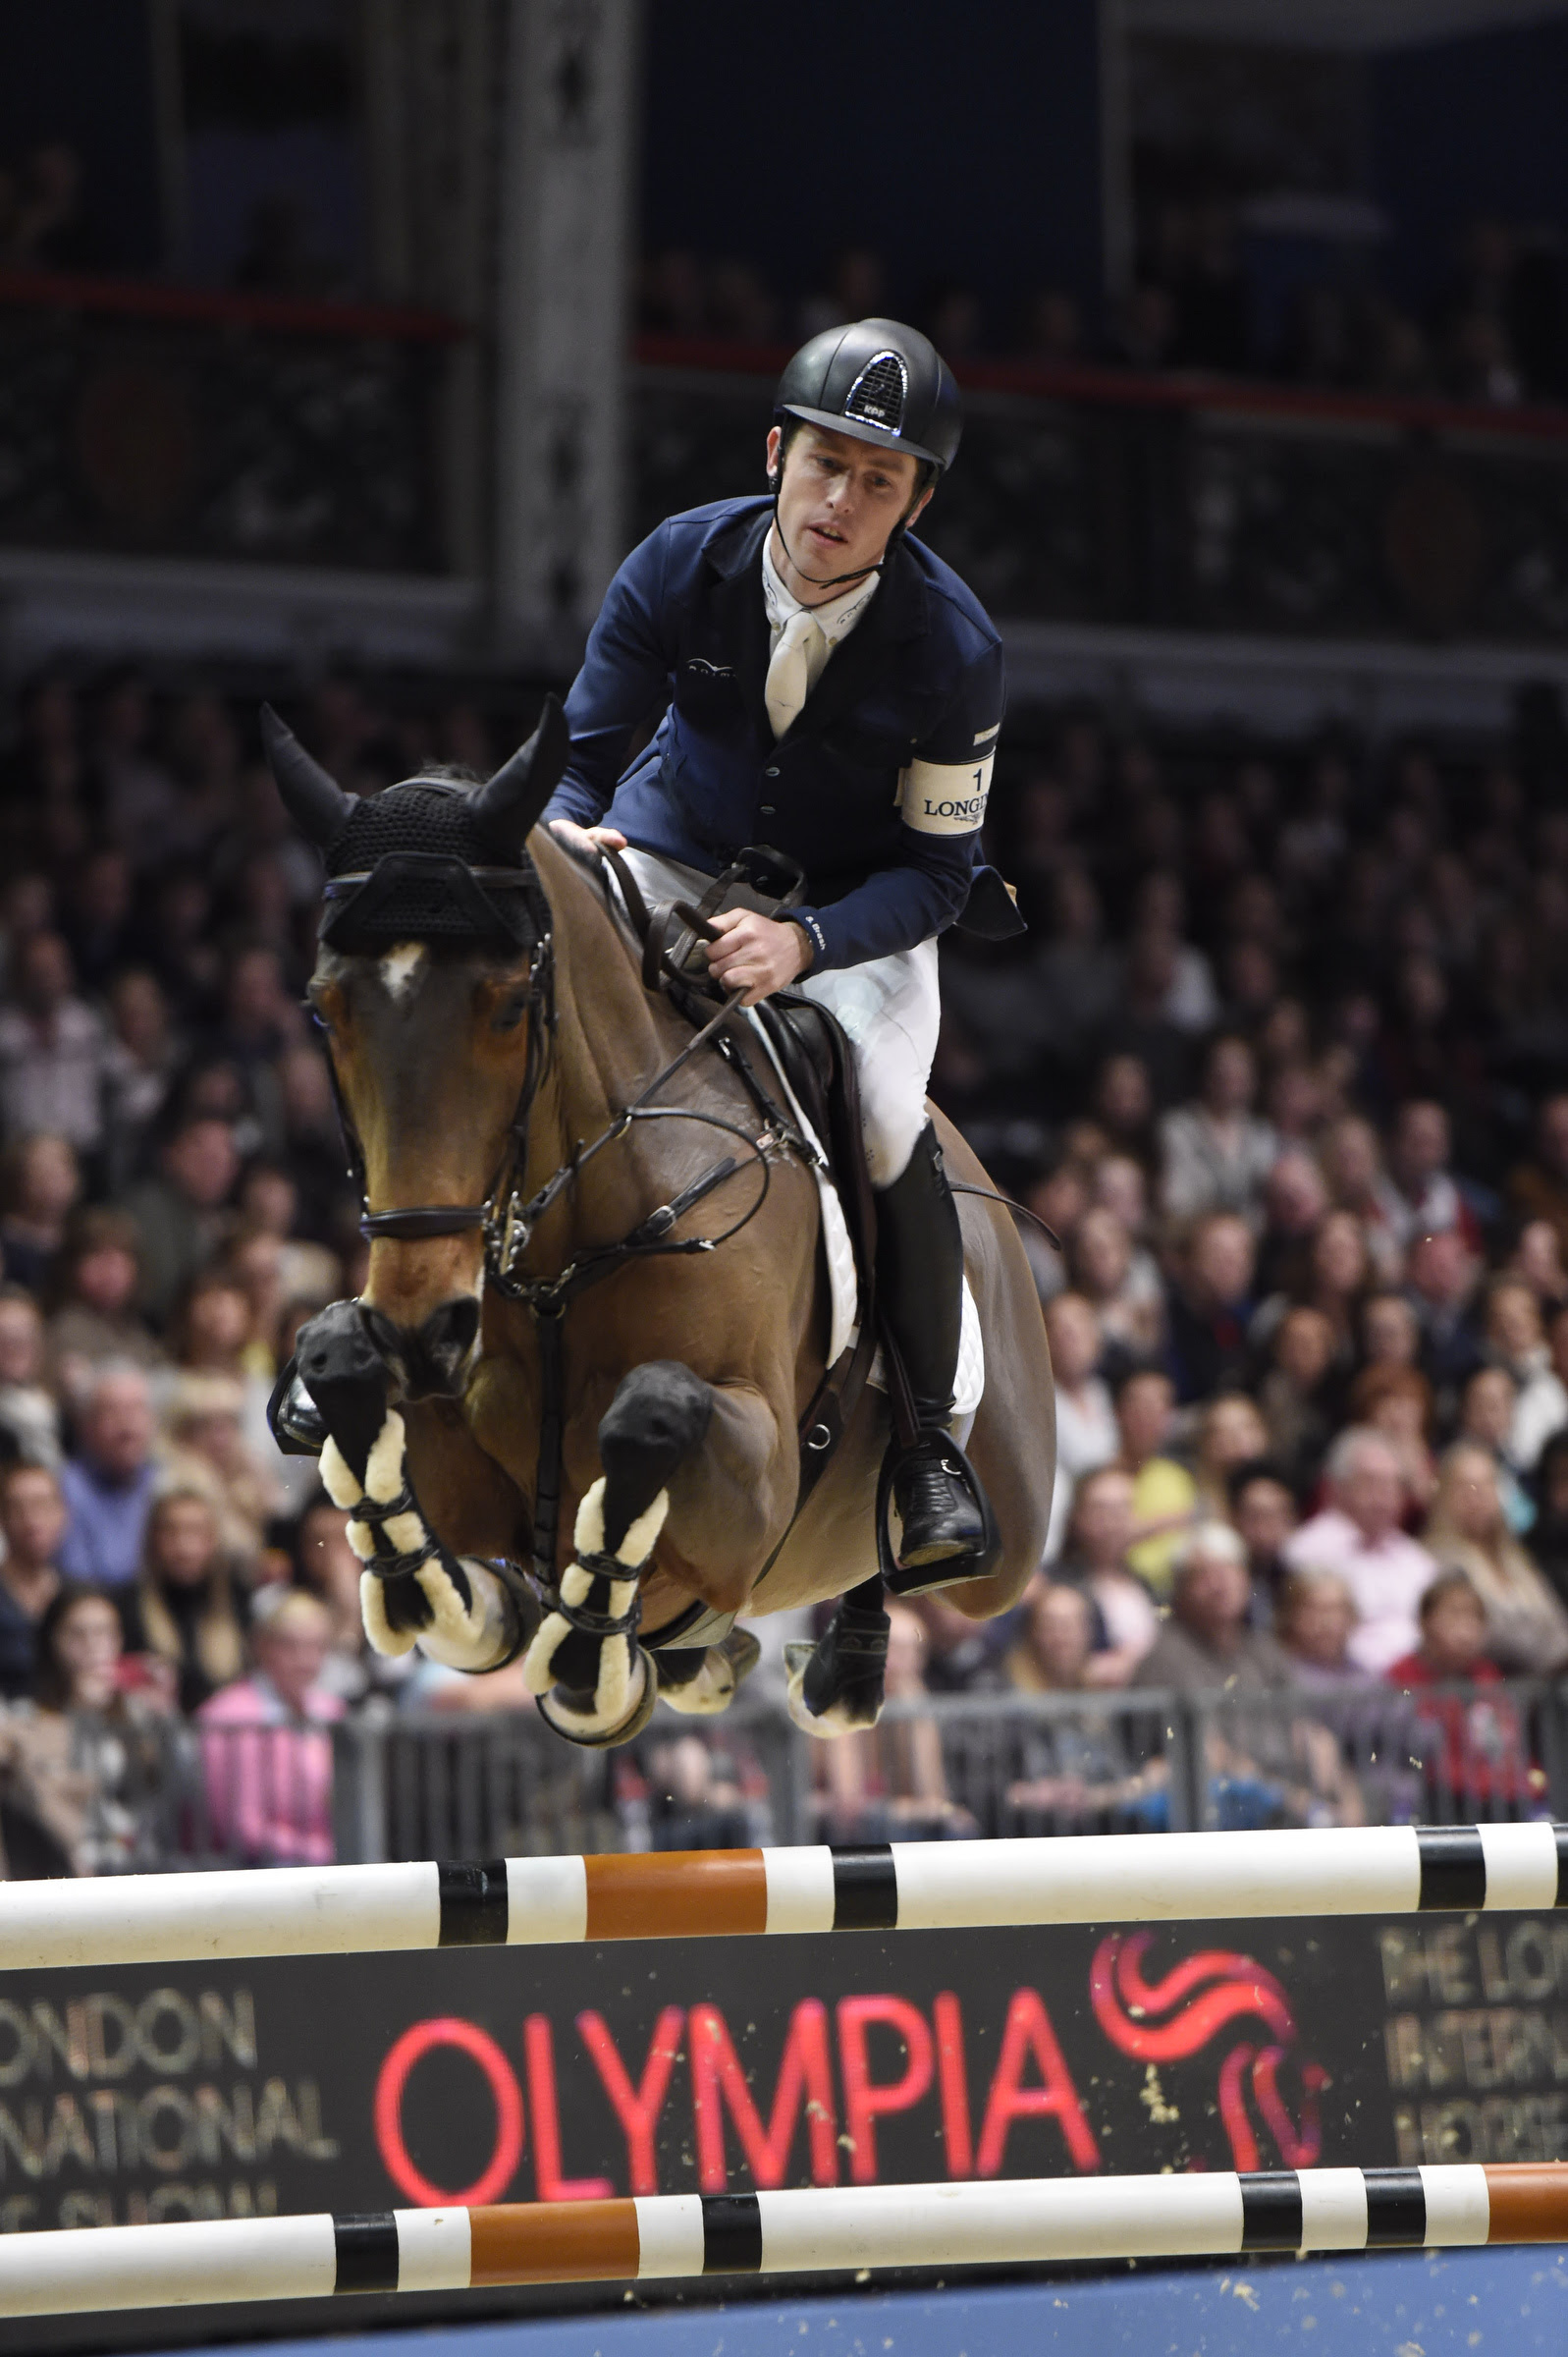 Horse Times Egypt: Equestrian Magazine :News :THREE WORLD NUMBER ONES UNDER ONE ROOF  AT OLYMPIA, THE LONDON INTERNATIONAL HORSE SHOW